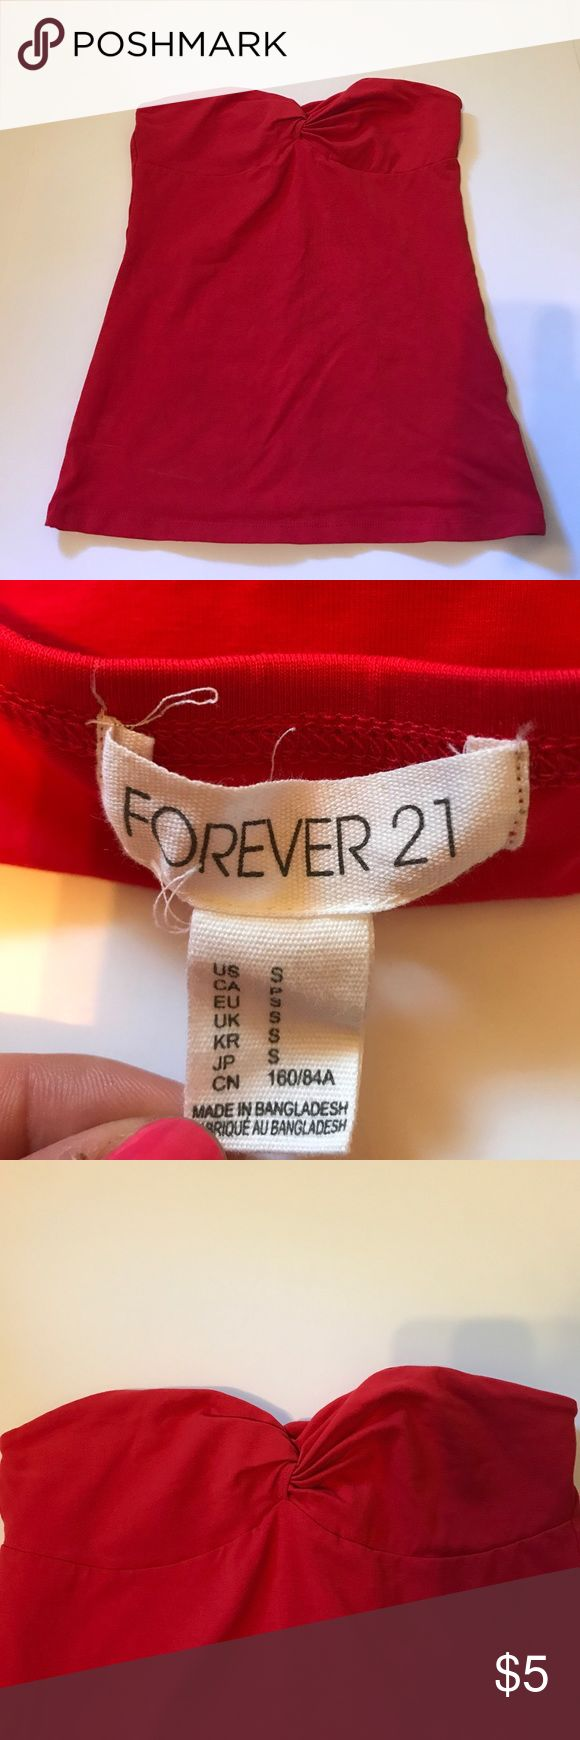 Red Forever 21 Strapless Top Size S. Worn once. Red, strapless, tube top. Twist detailing. Would be great for the 4th of July! Tight-fitting. Forever 21 Tops Camisoles